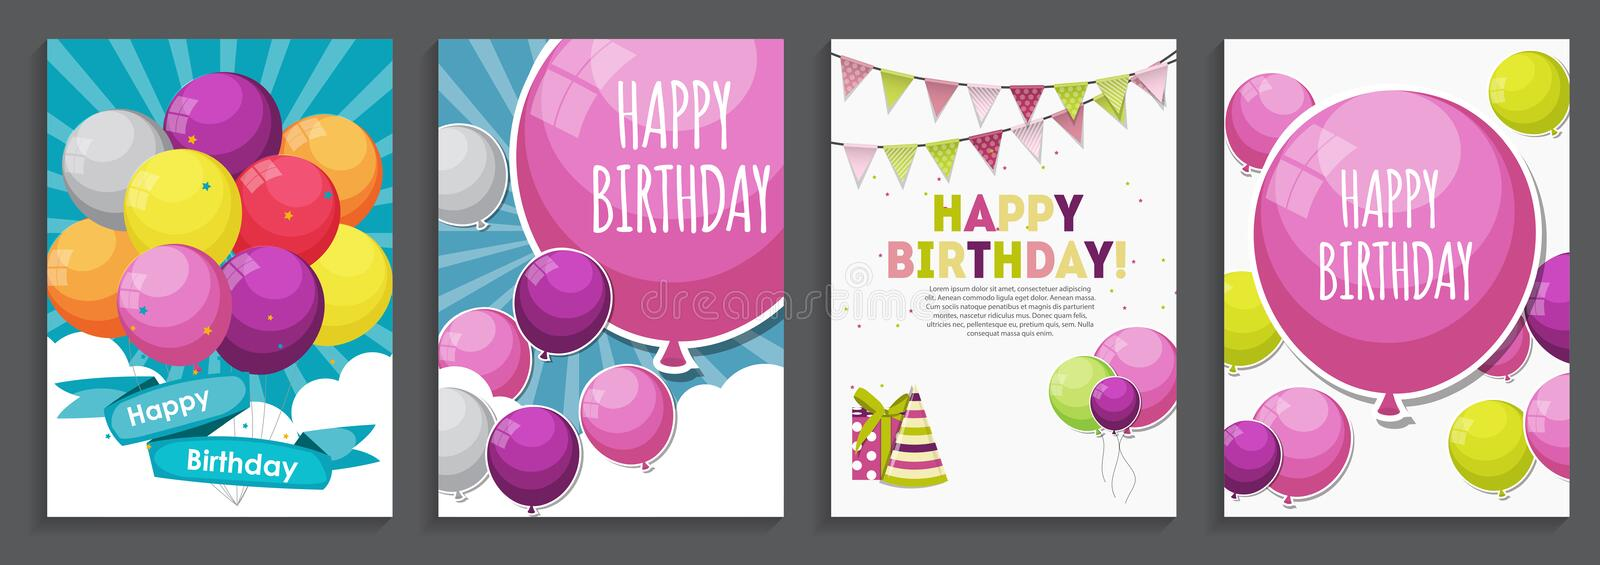 Happy Birthday, Holiday Greeting and Invitation Card Template S stock illustration